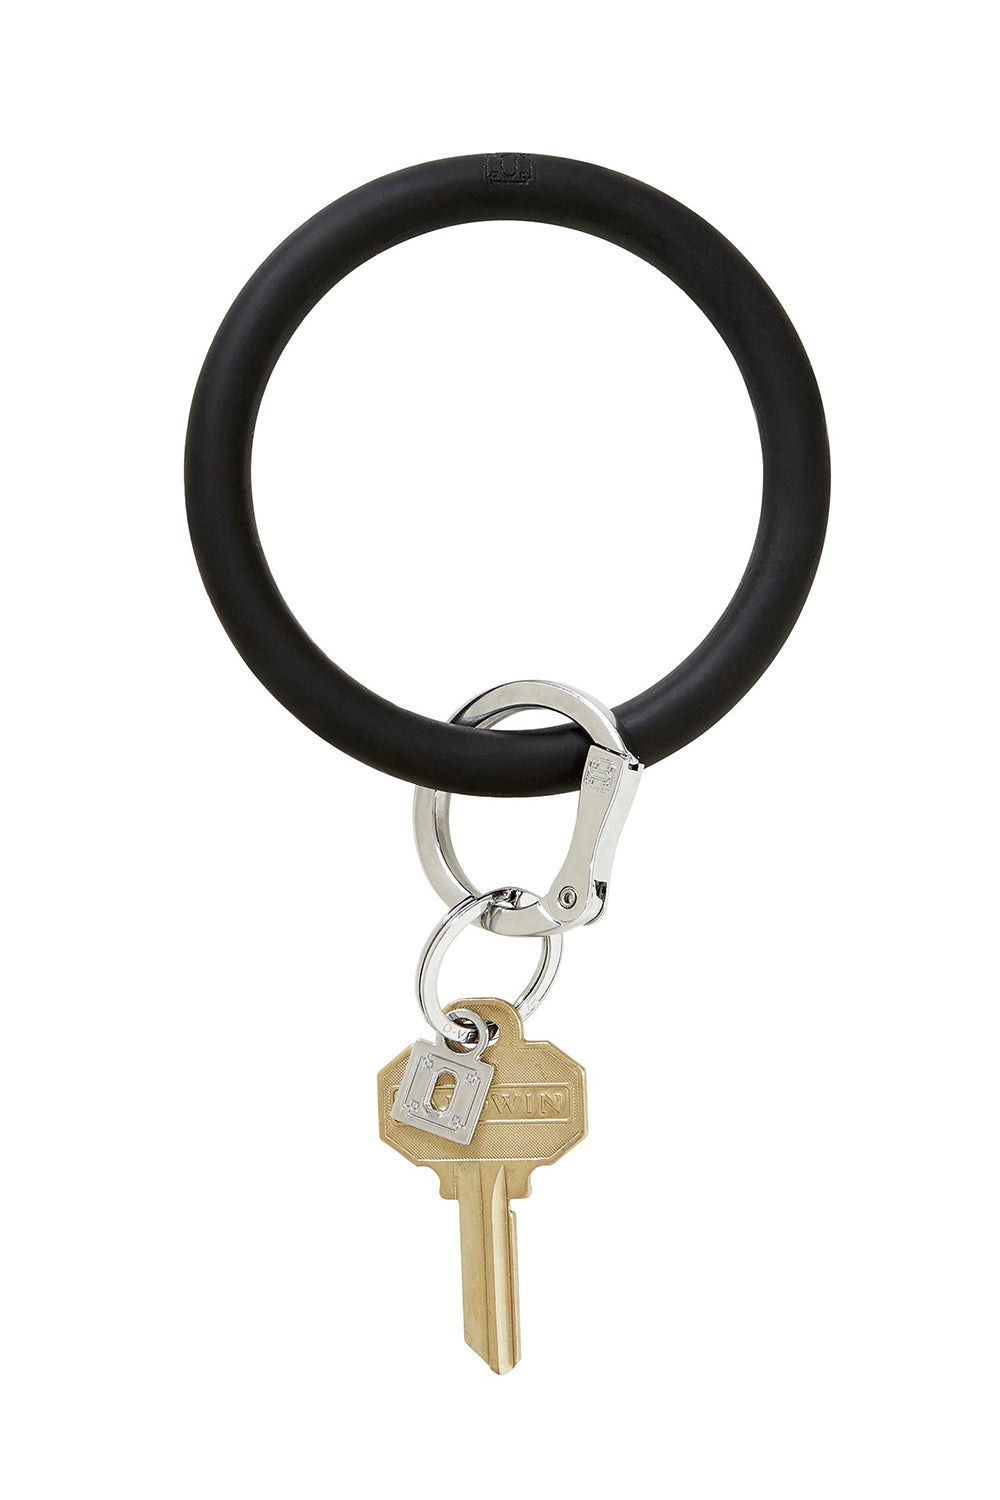 The BIG O Key Ring *Silicone* - Back in Black